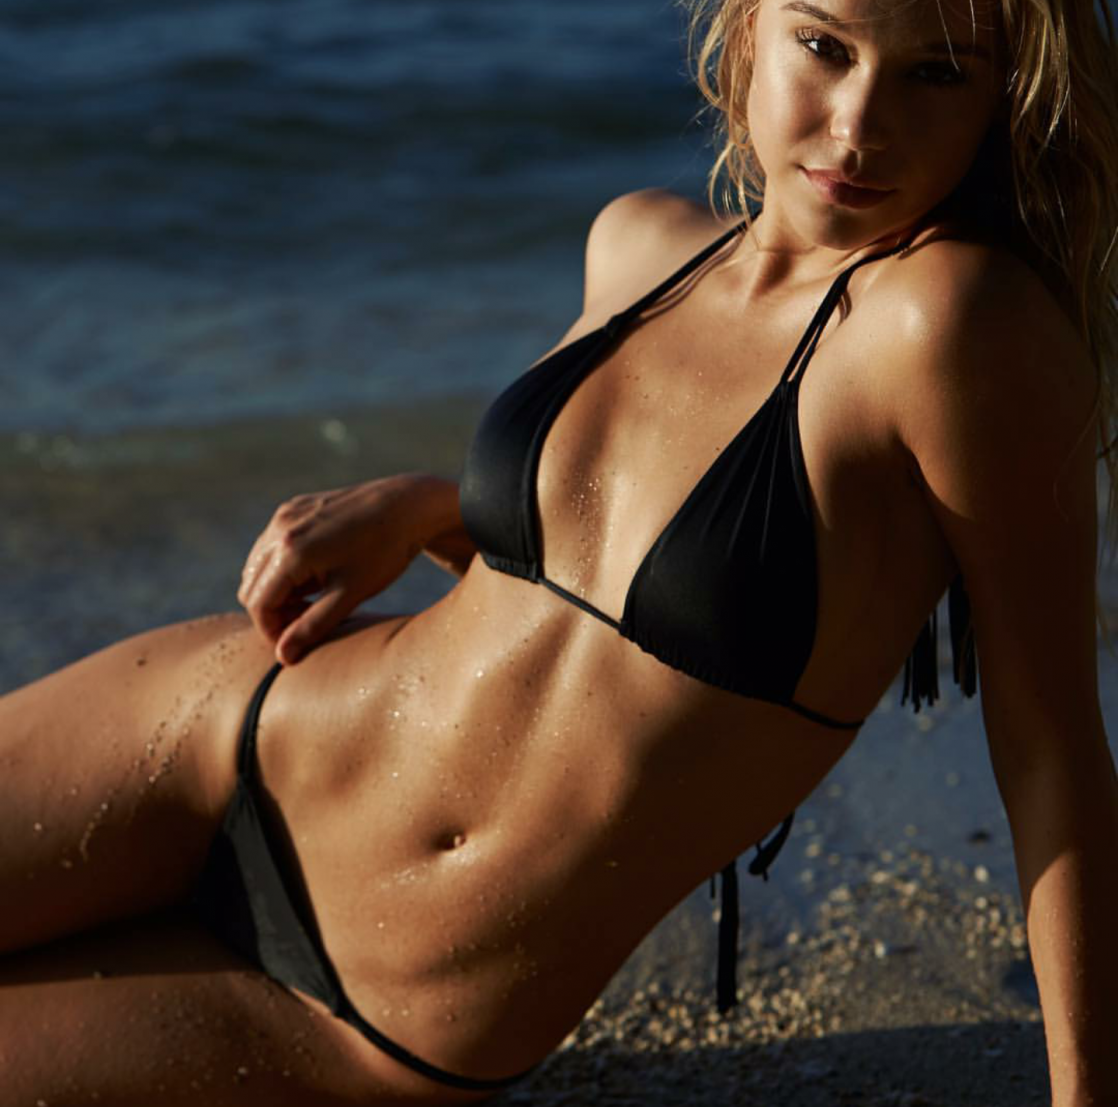 Alexis Ren photo 178 of 666 pics, wallpaper - photo #855188 ...